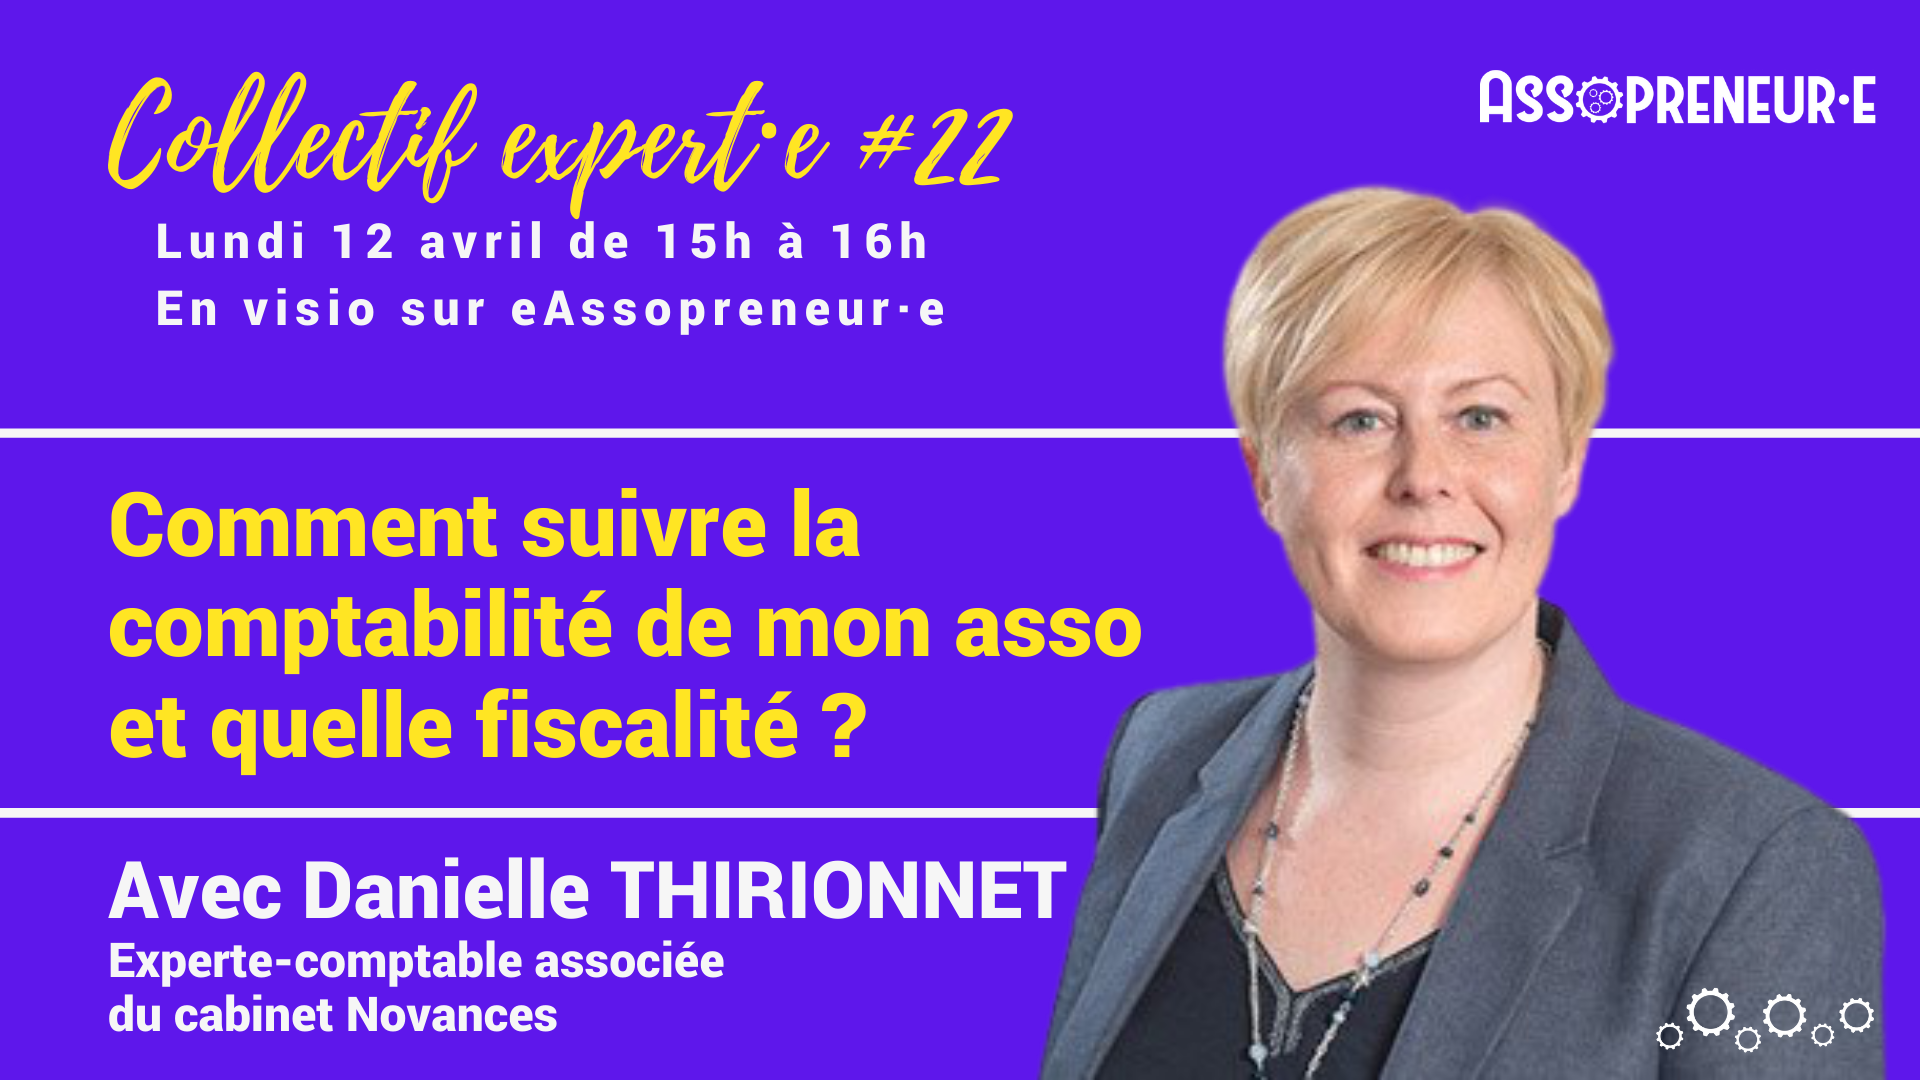 Collectif expert 22 Danielle Thirionnet Assopreneur